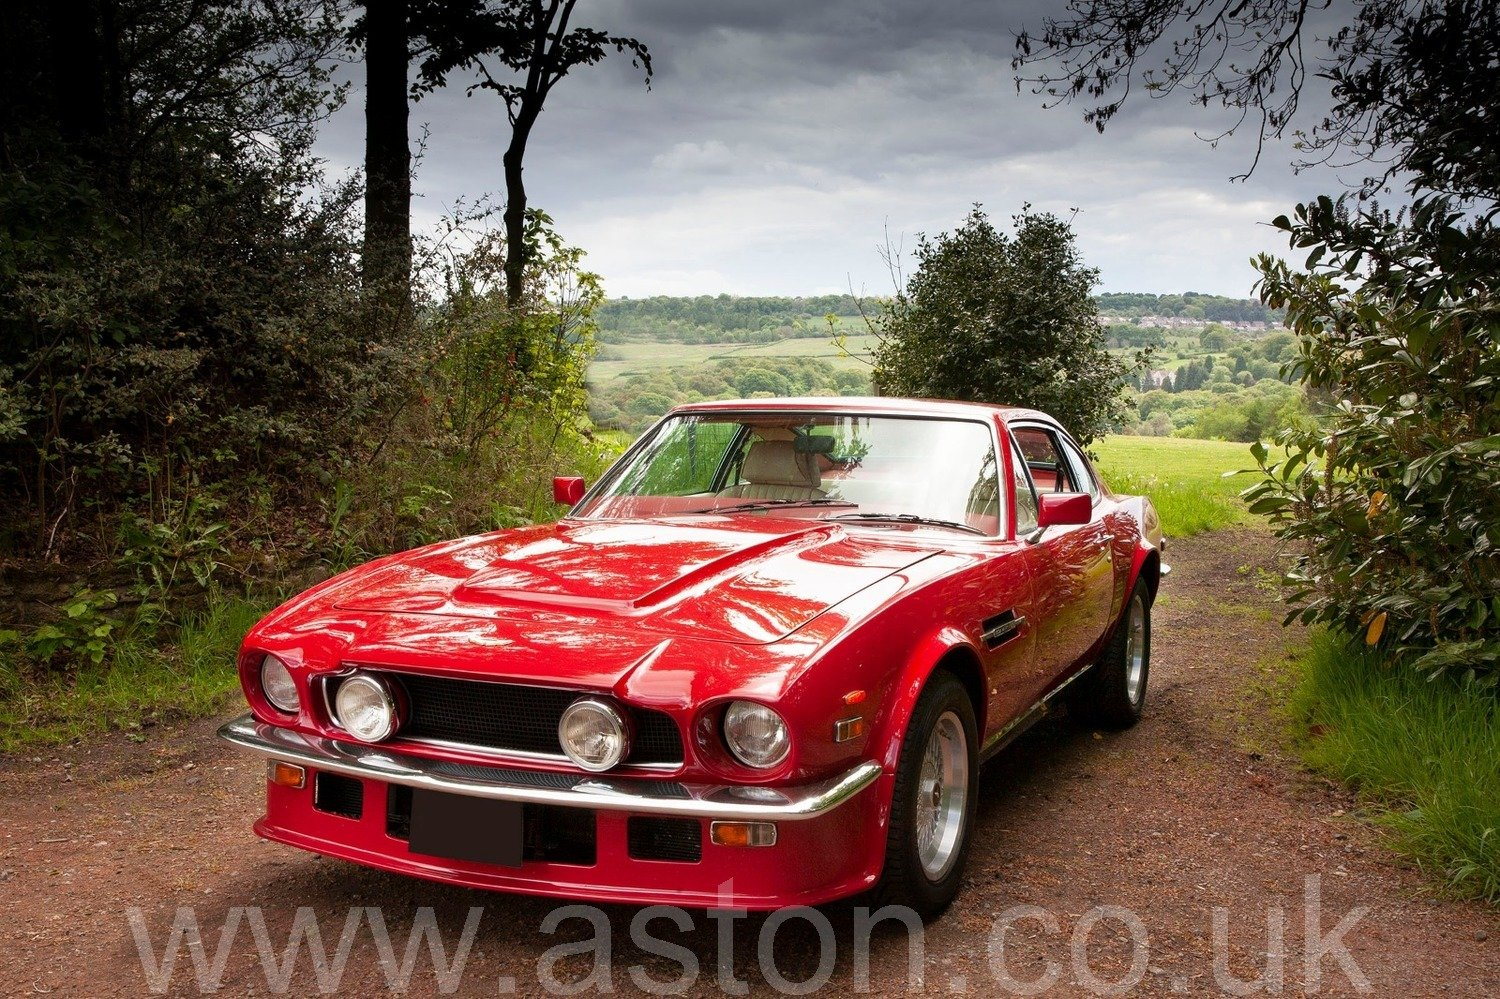 One Owner 1980 Aston Martin V8 Series IV 'Oscar India' X pac SOLD (picture 2 of 6)